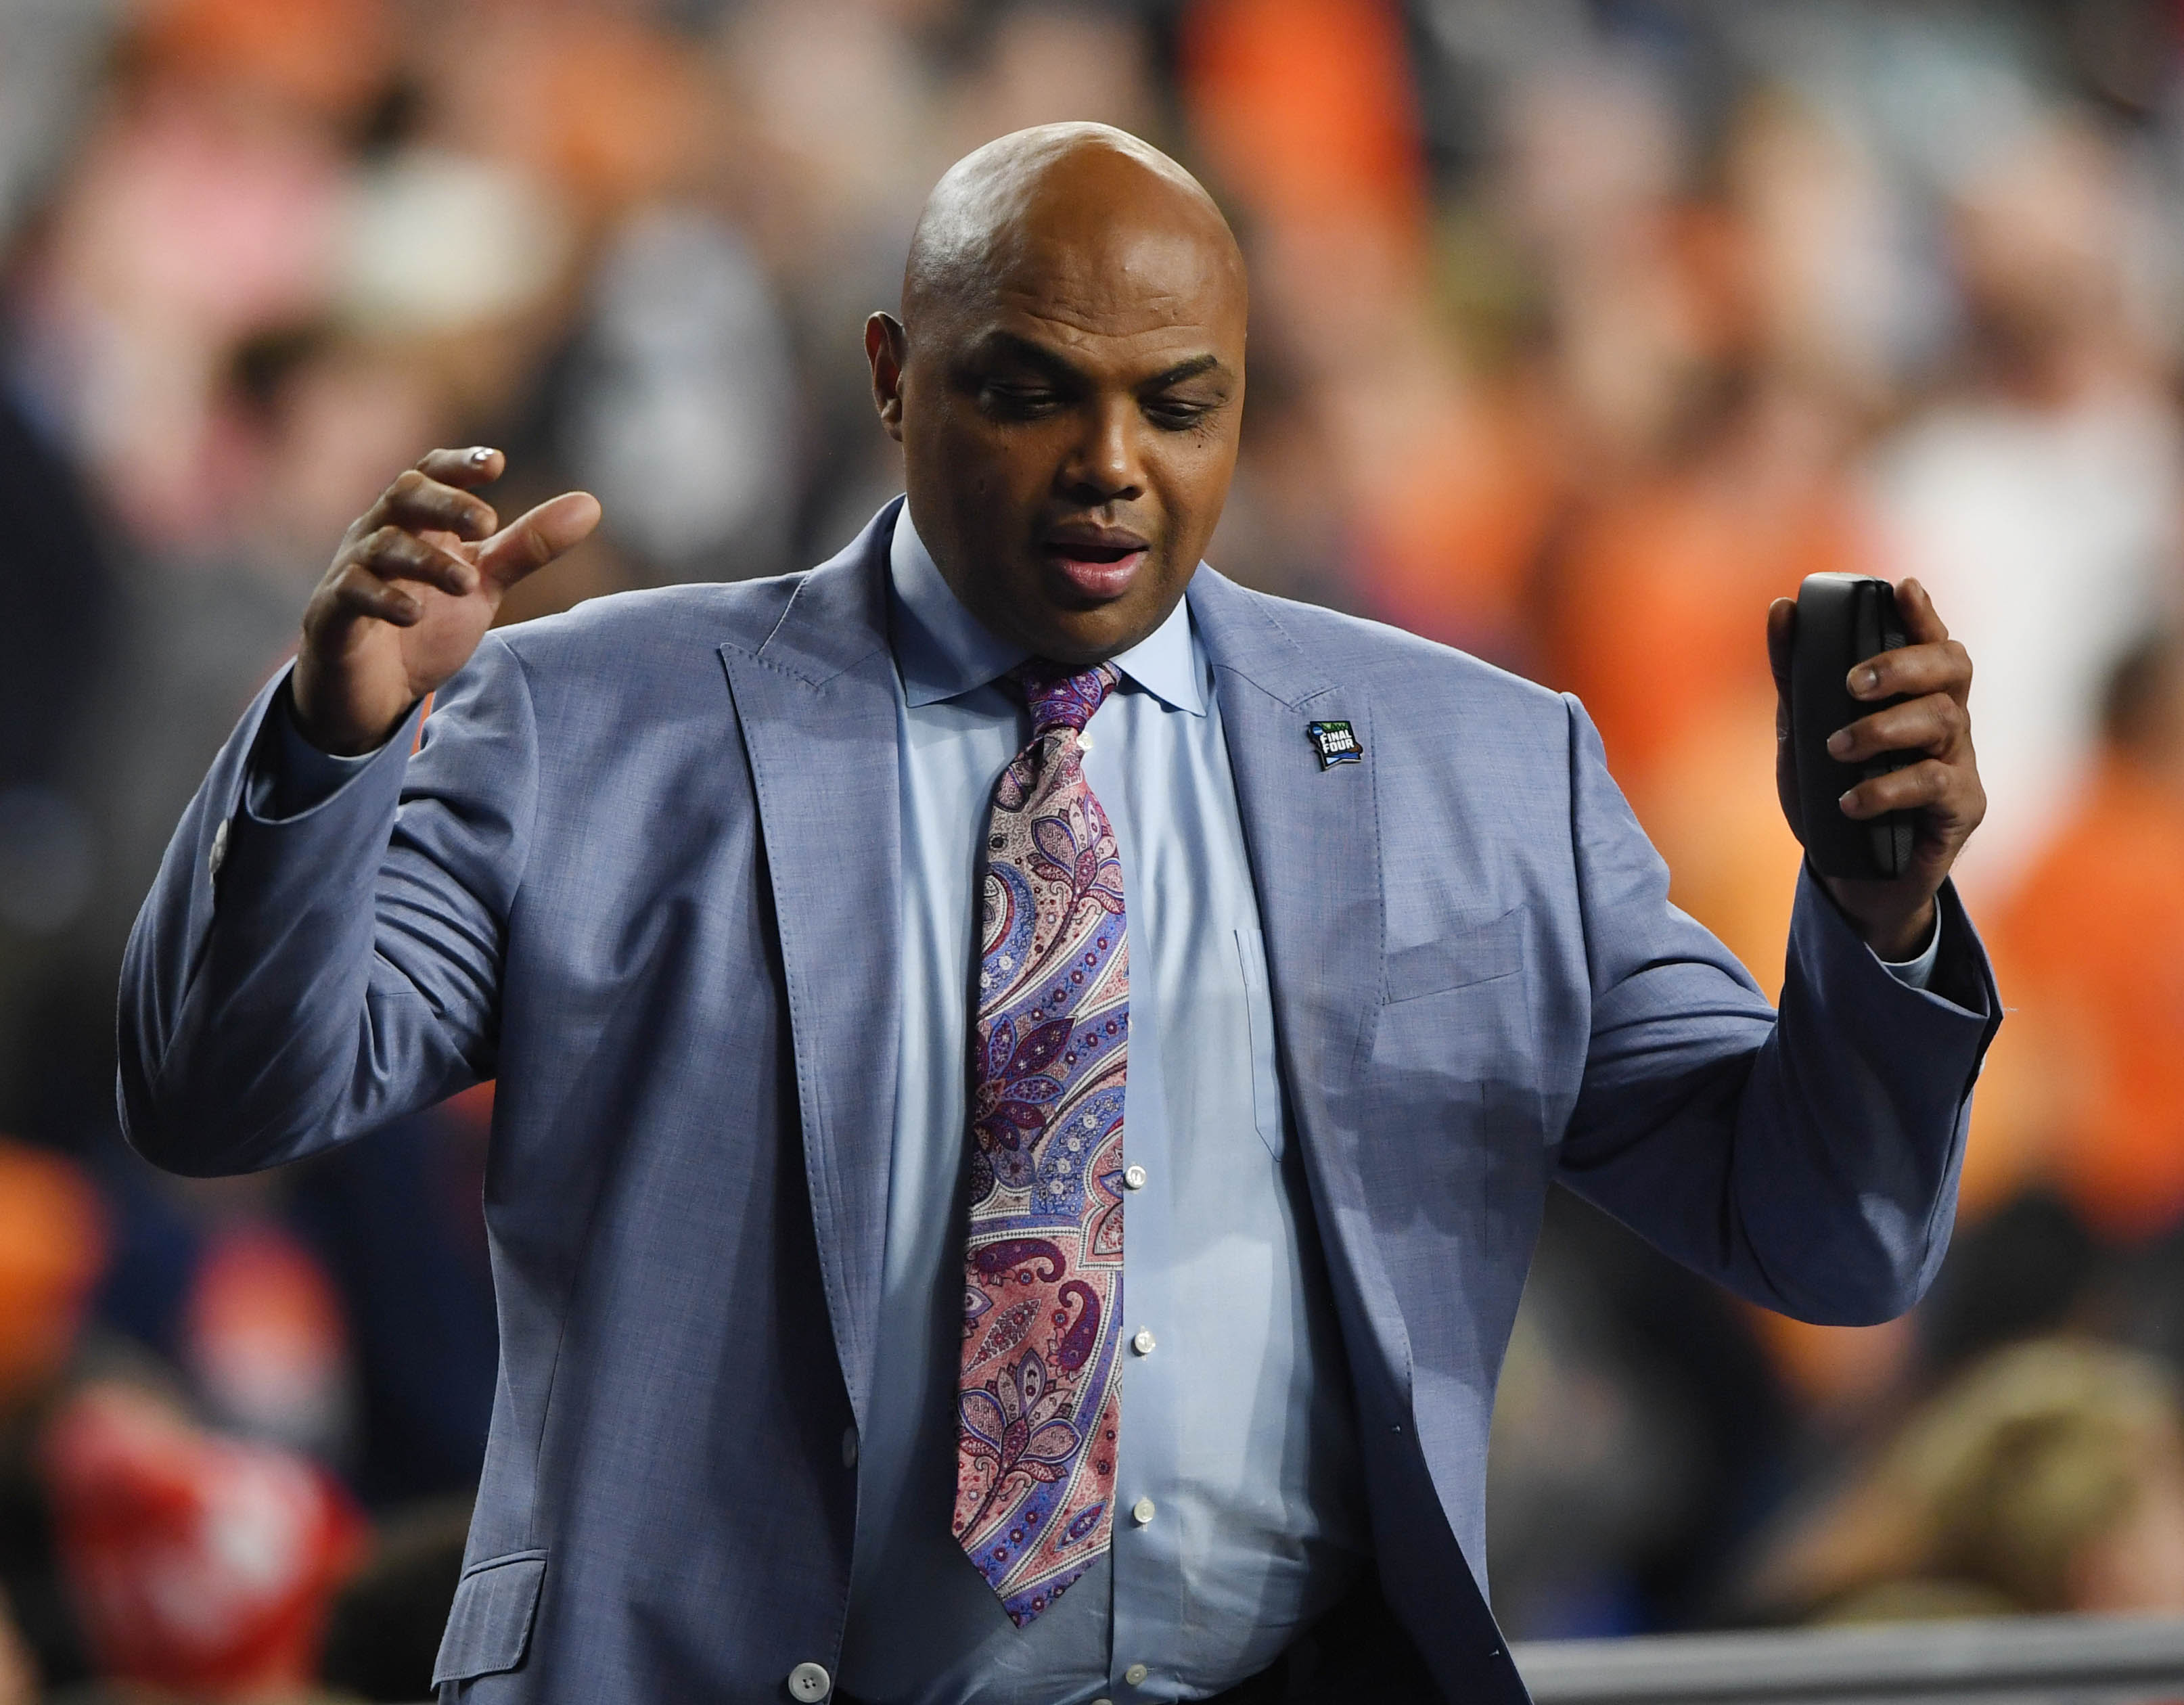 Charles Barkley to be honored by Sixers with statue outside practice facility